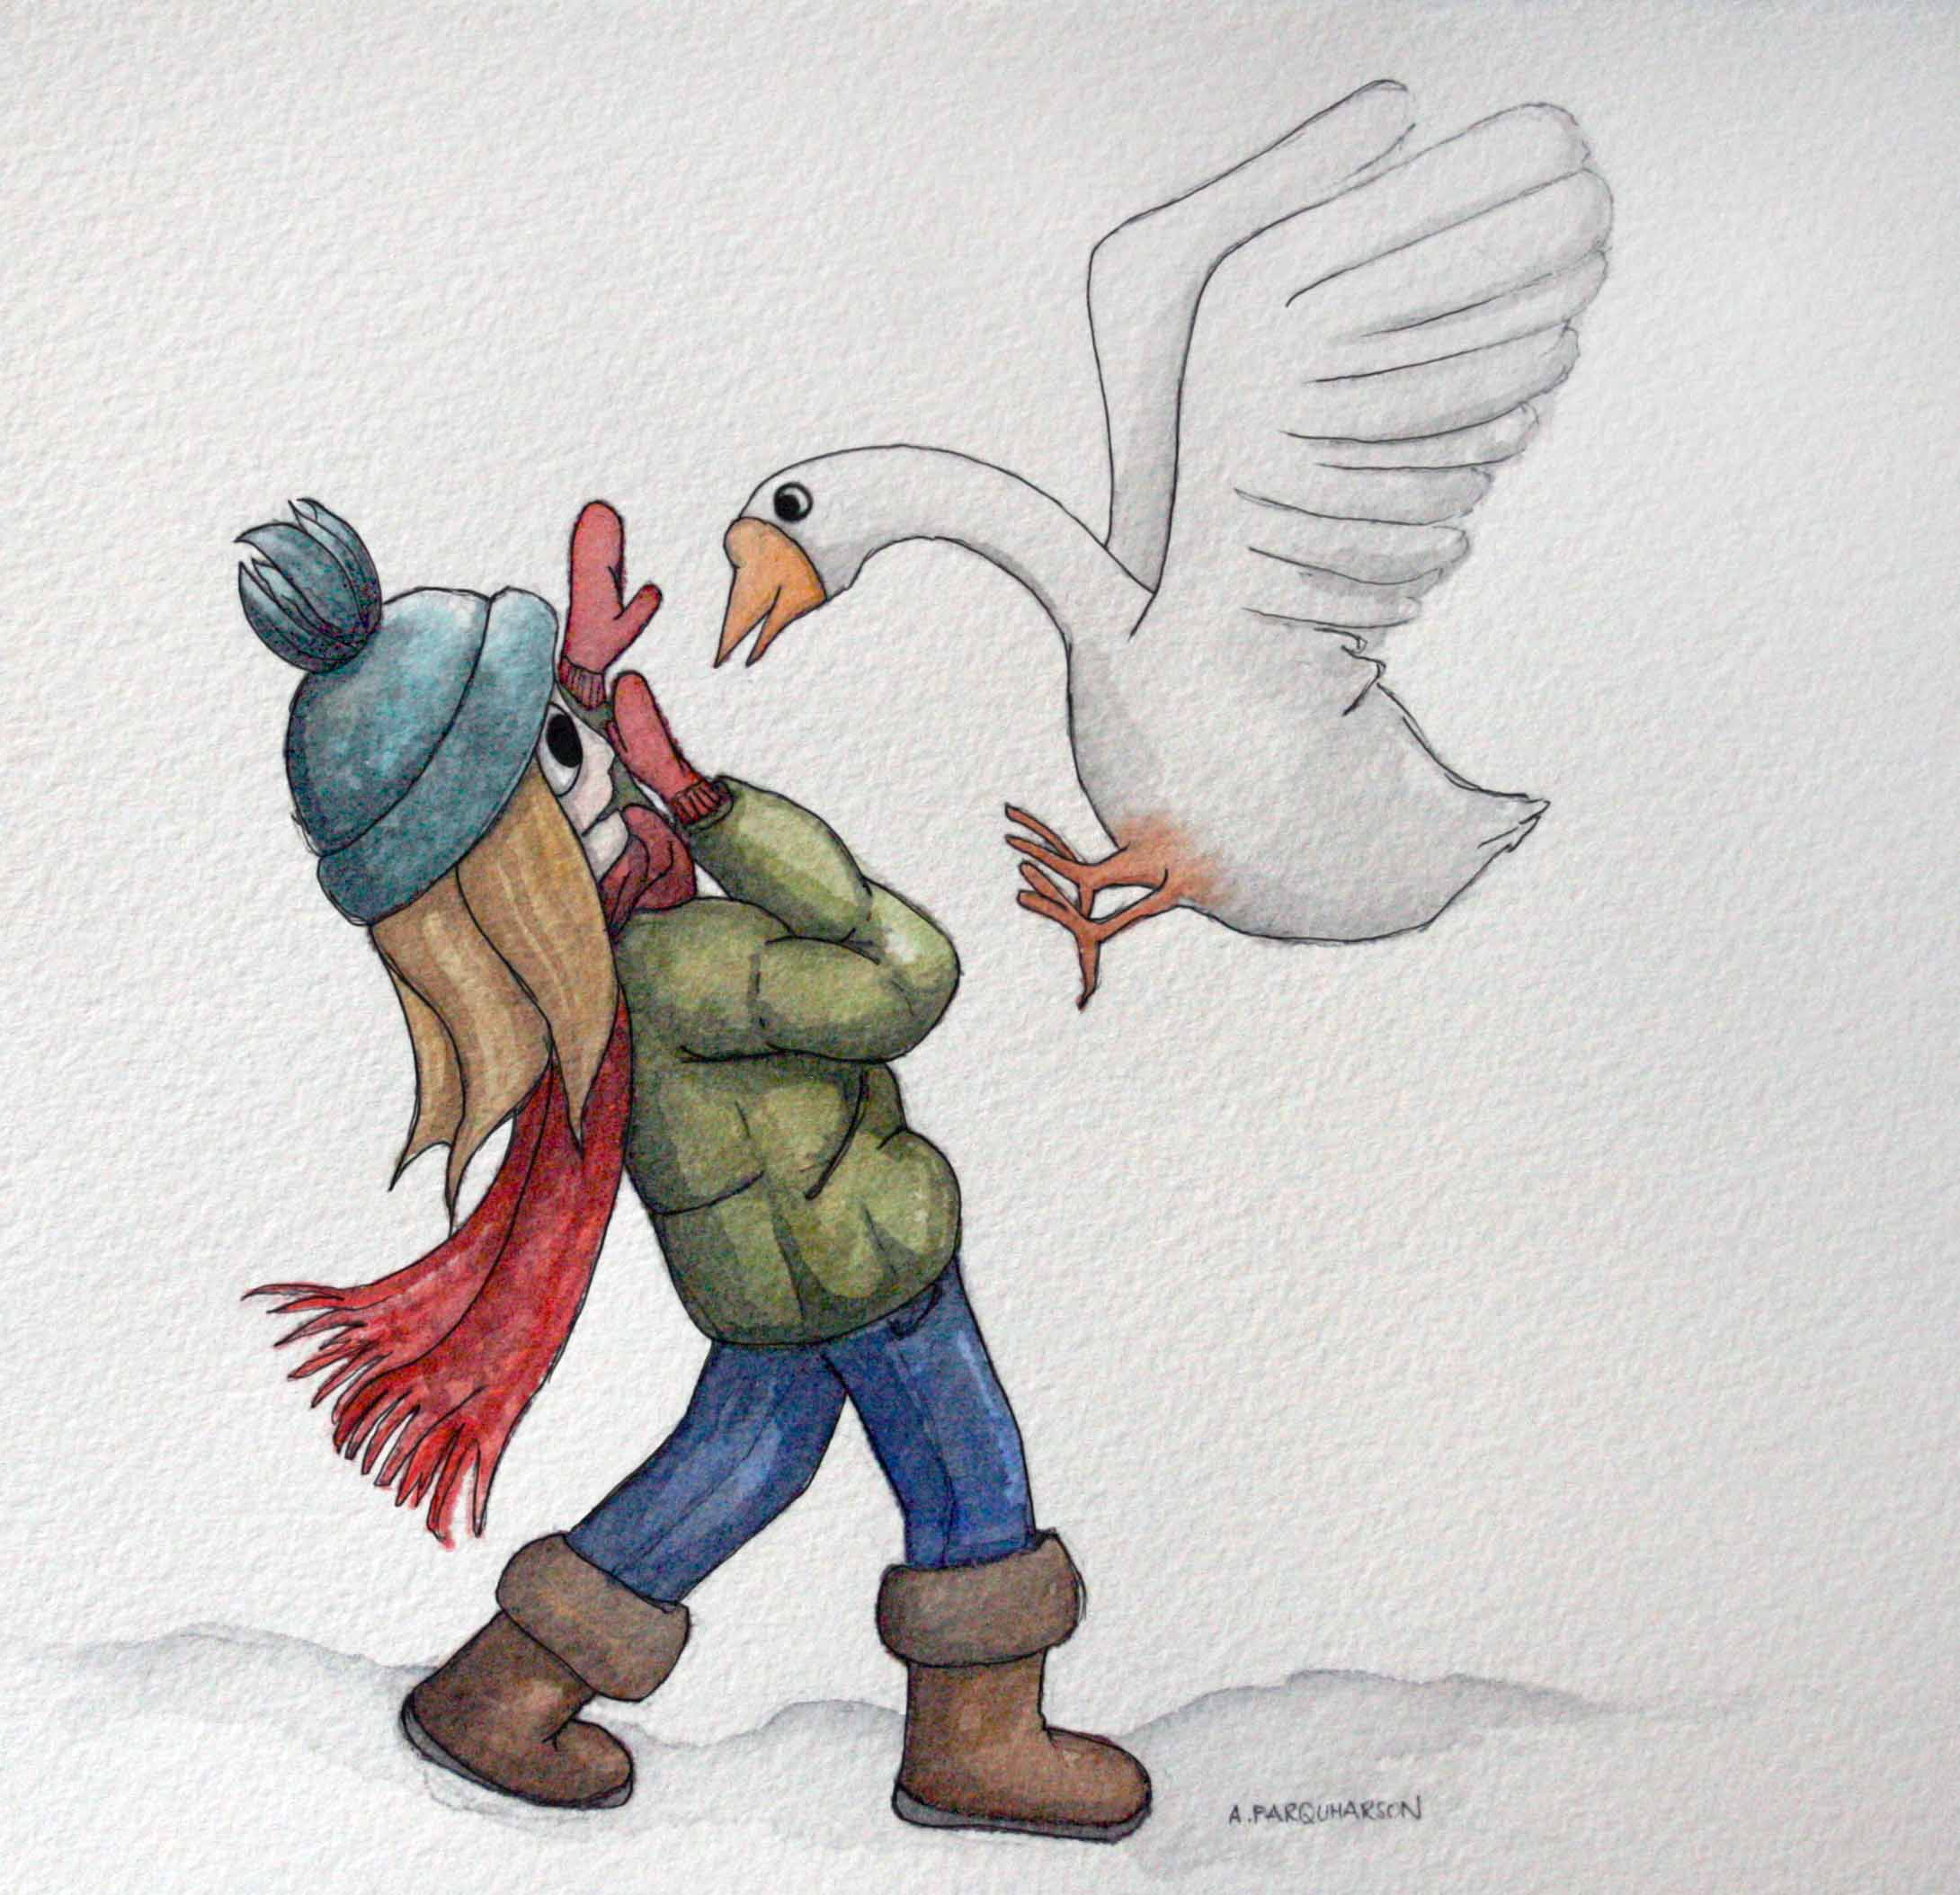 Attacked by a vicious goose in the snow illustration